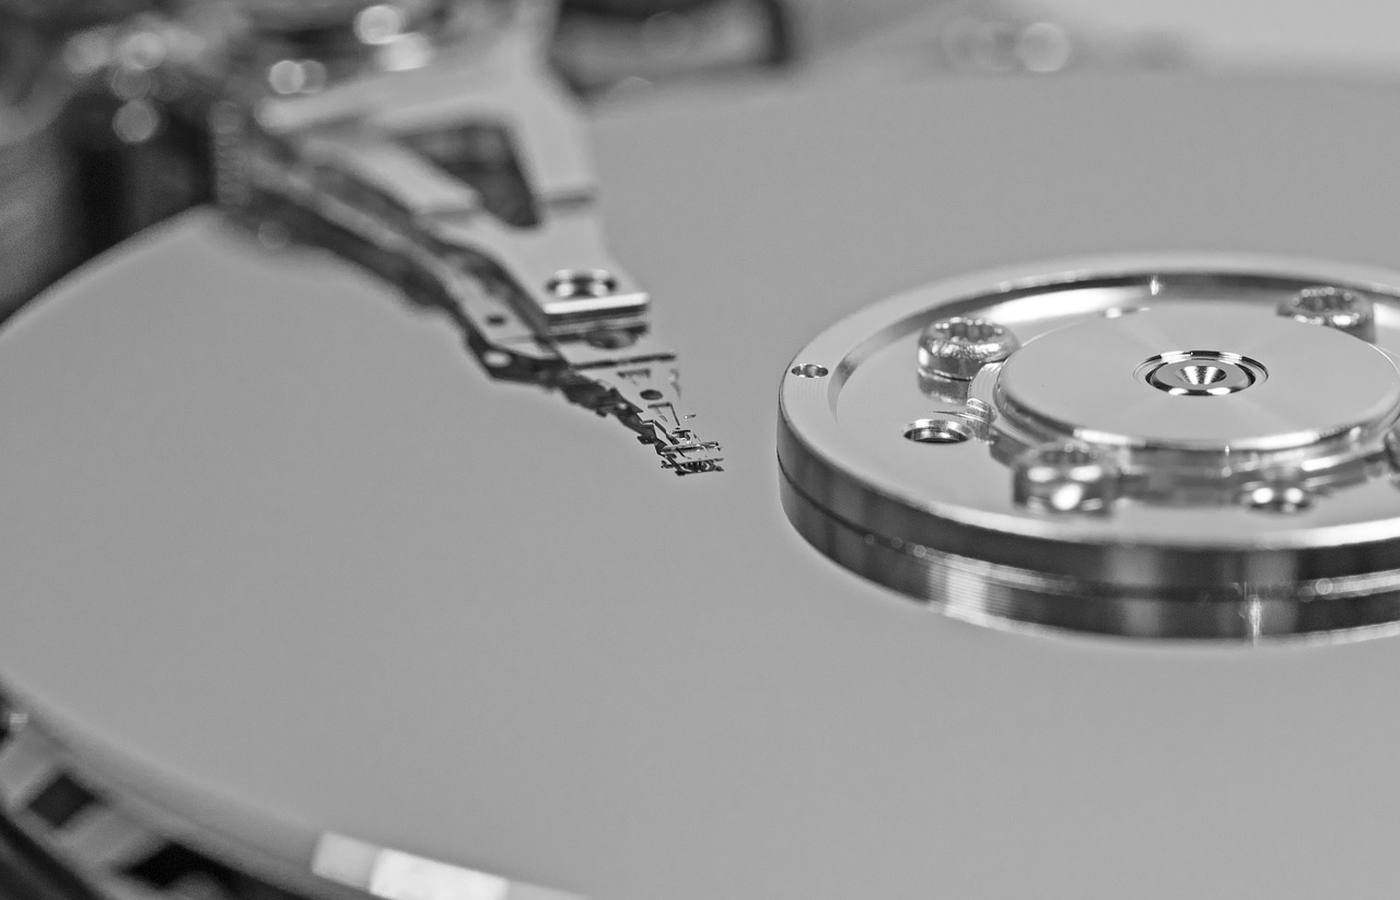 The Most Expensive Hard Drive You Can Buy: Worth it or dumb buy?